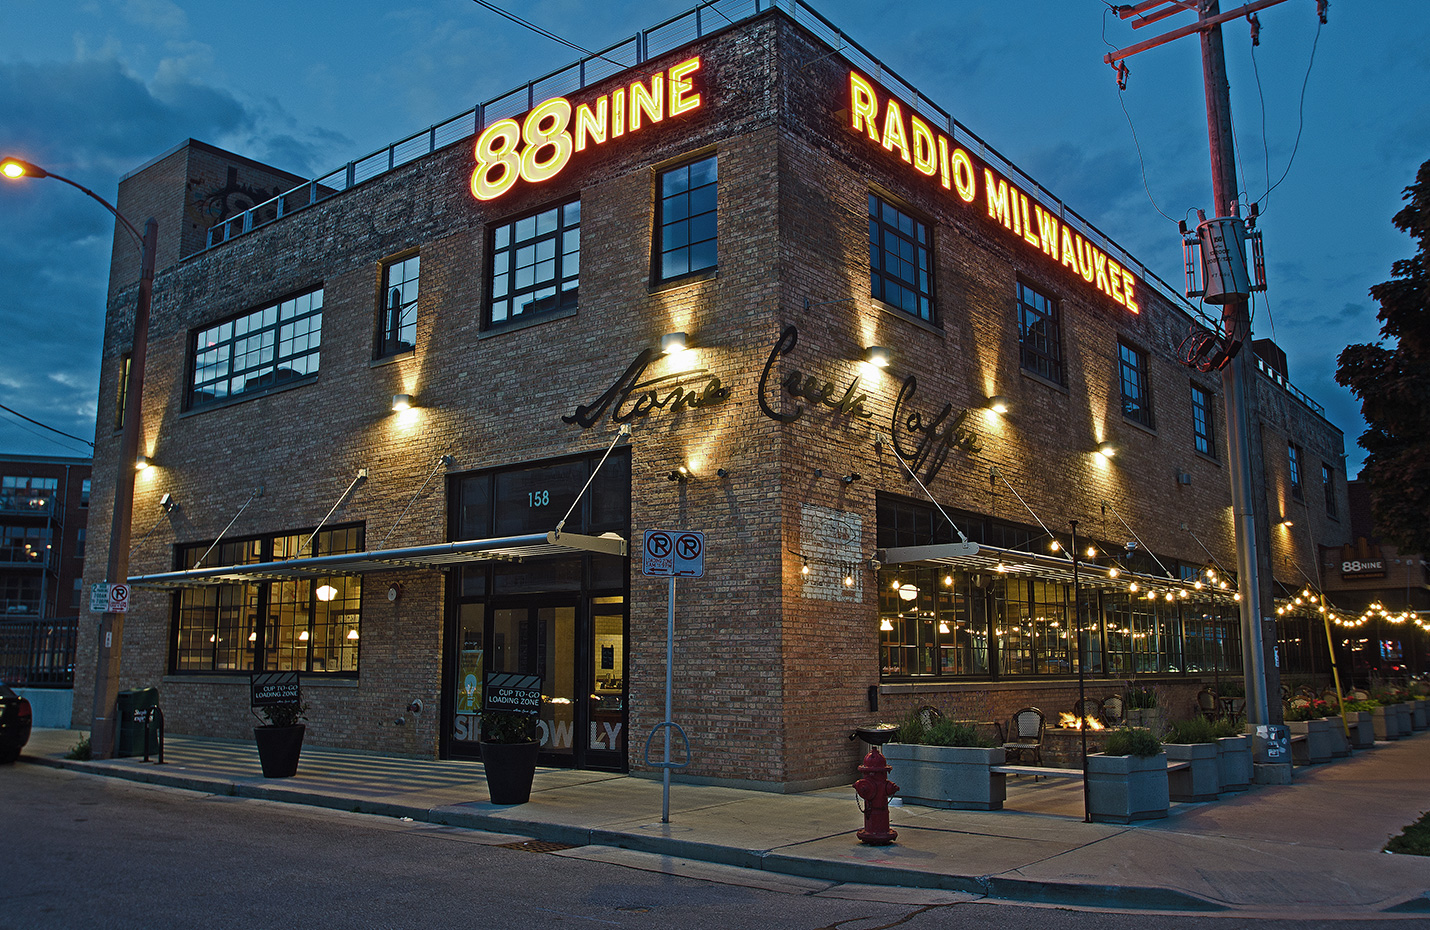 88Nine Radio Milwaukee Exterior Neon signage